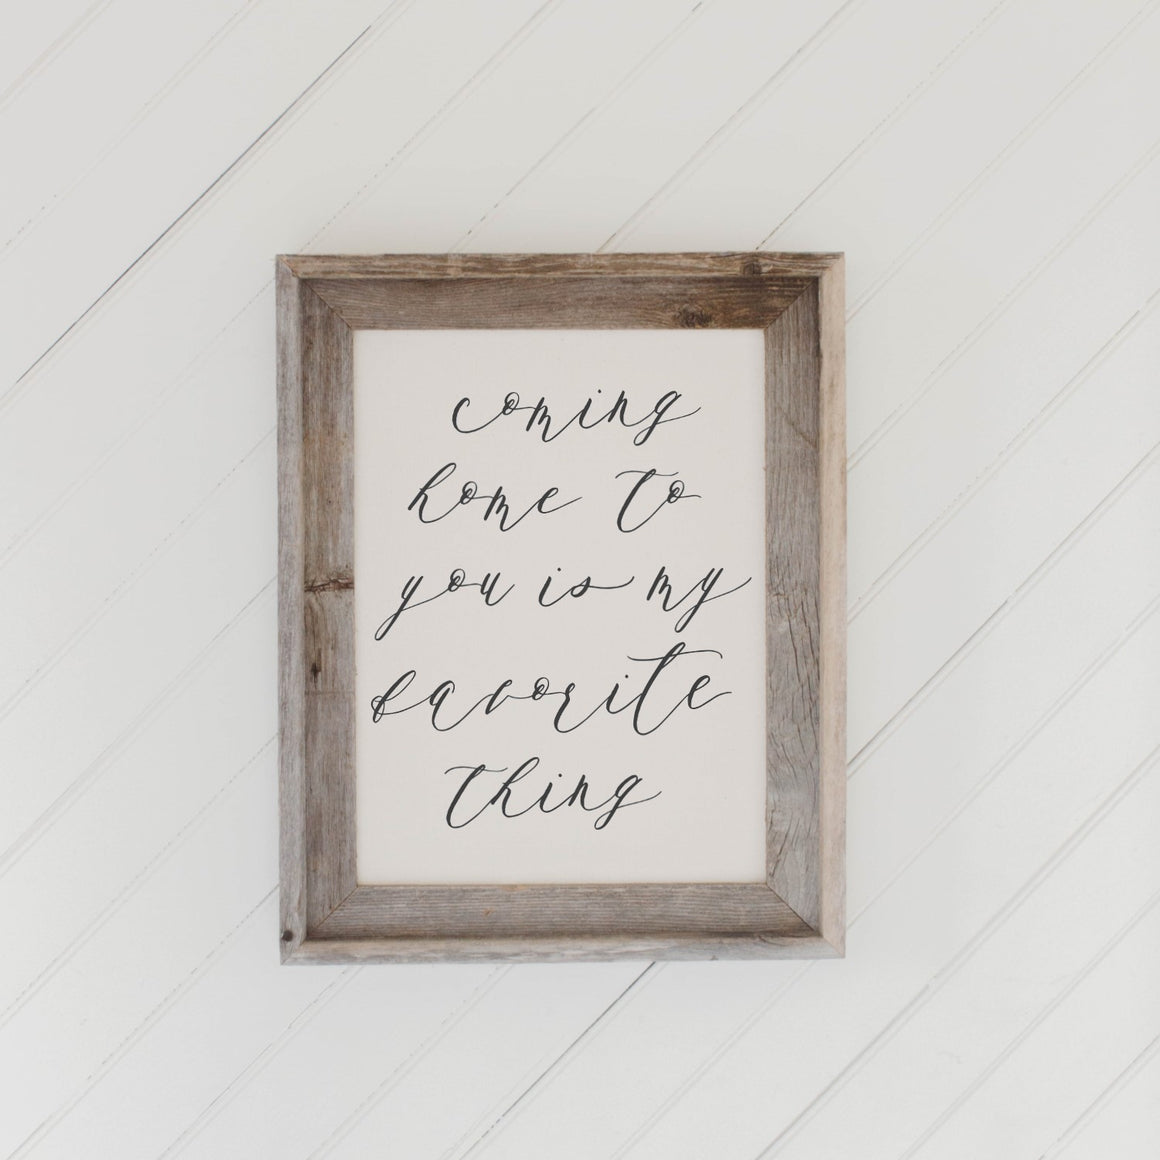 Coming Home To You Is My Favorite Thing Barn Wood Framed Print